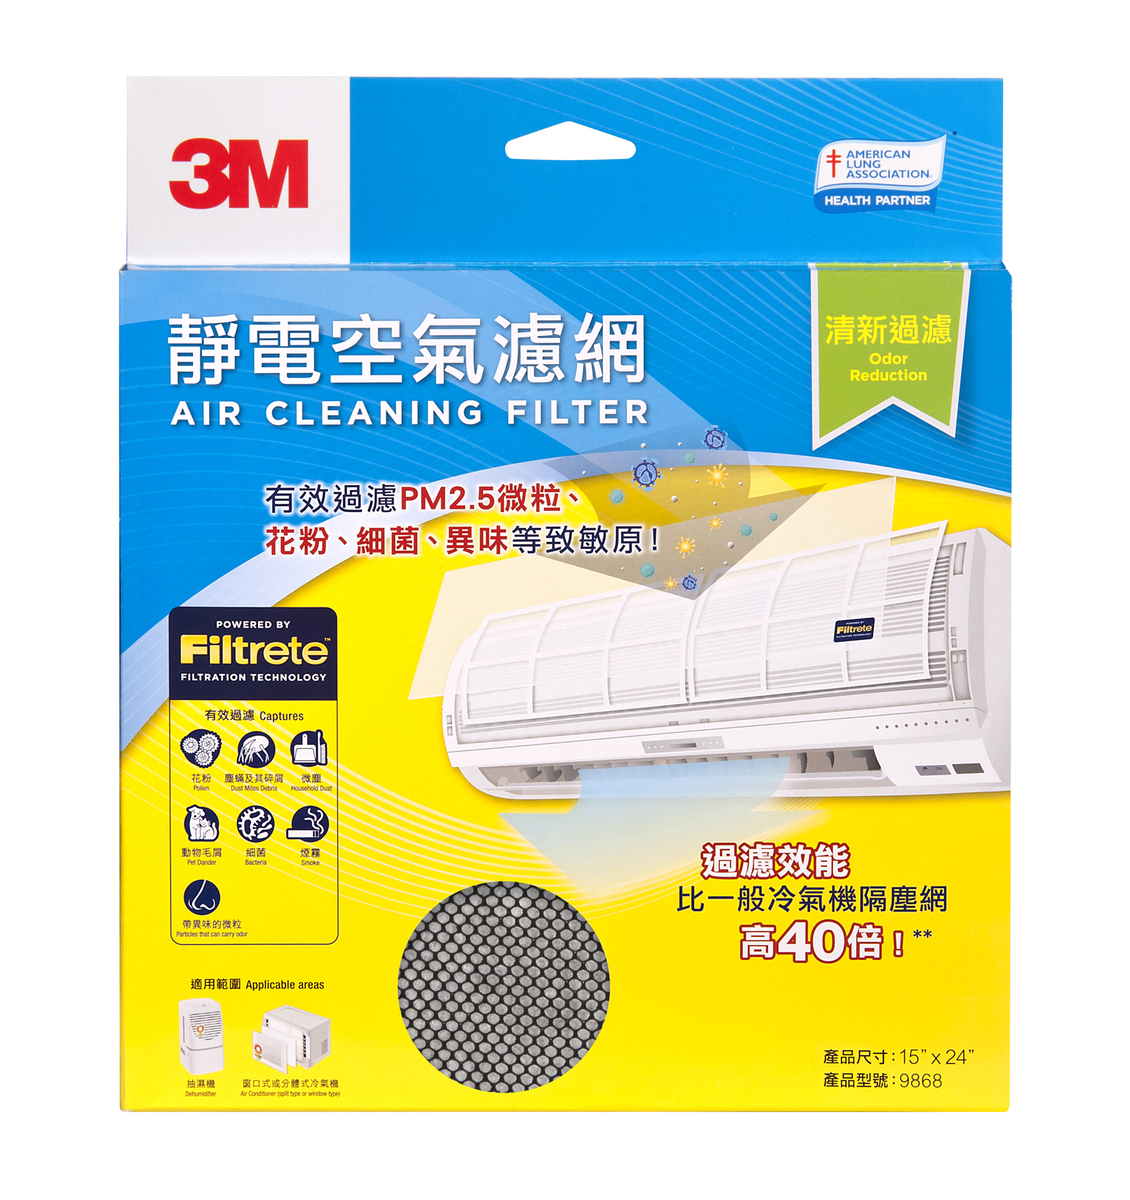 Air Cleaning Filter - Odor Reduction - 9868 (3 pack)